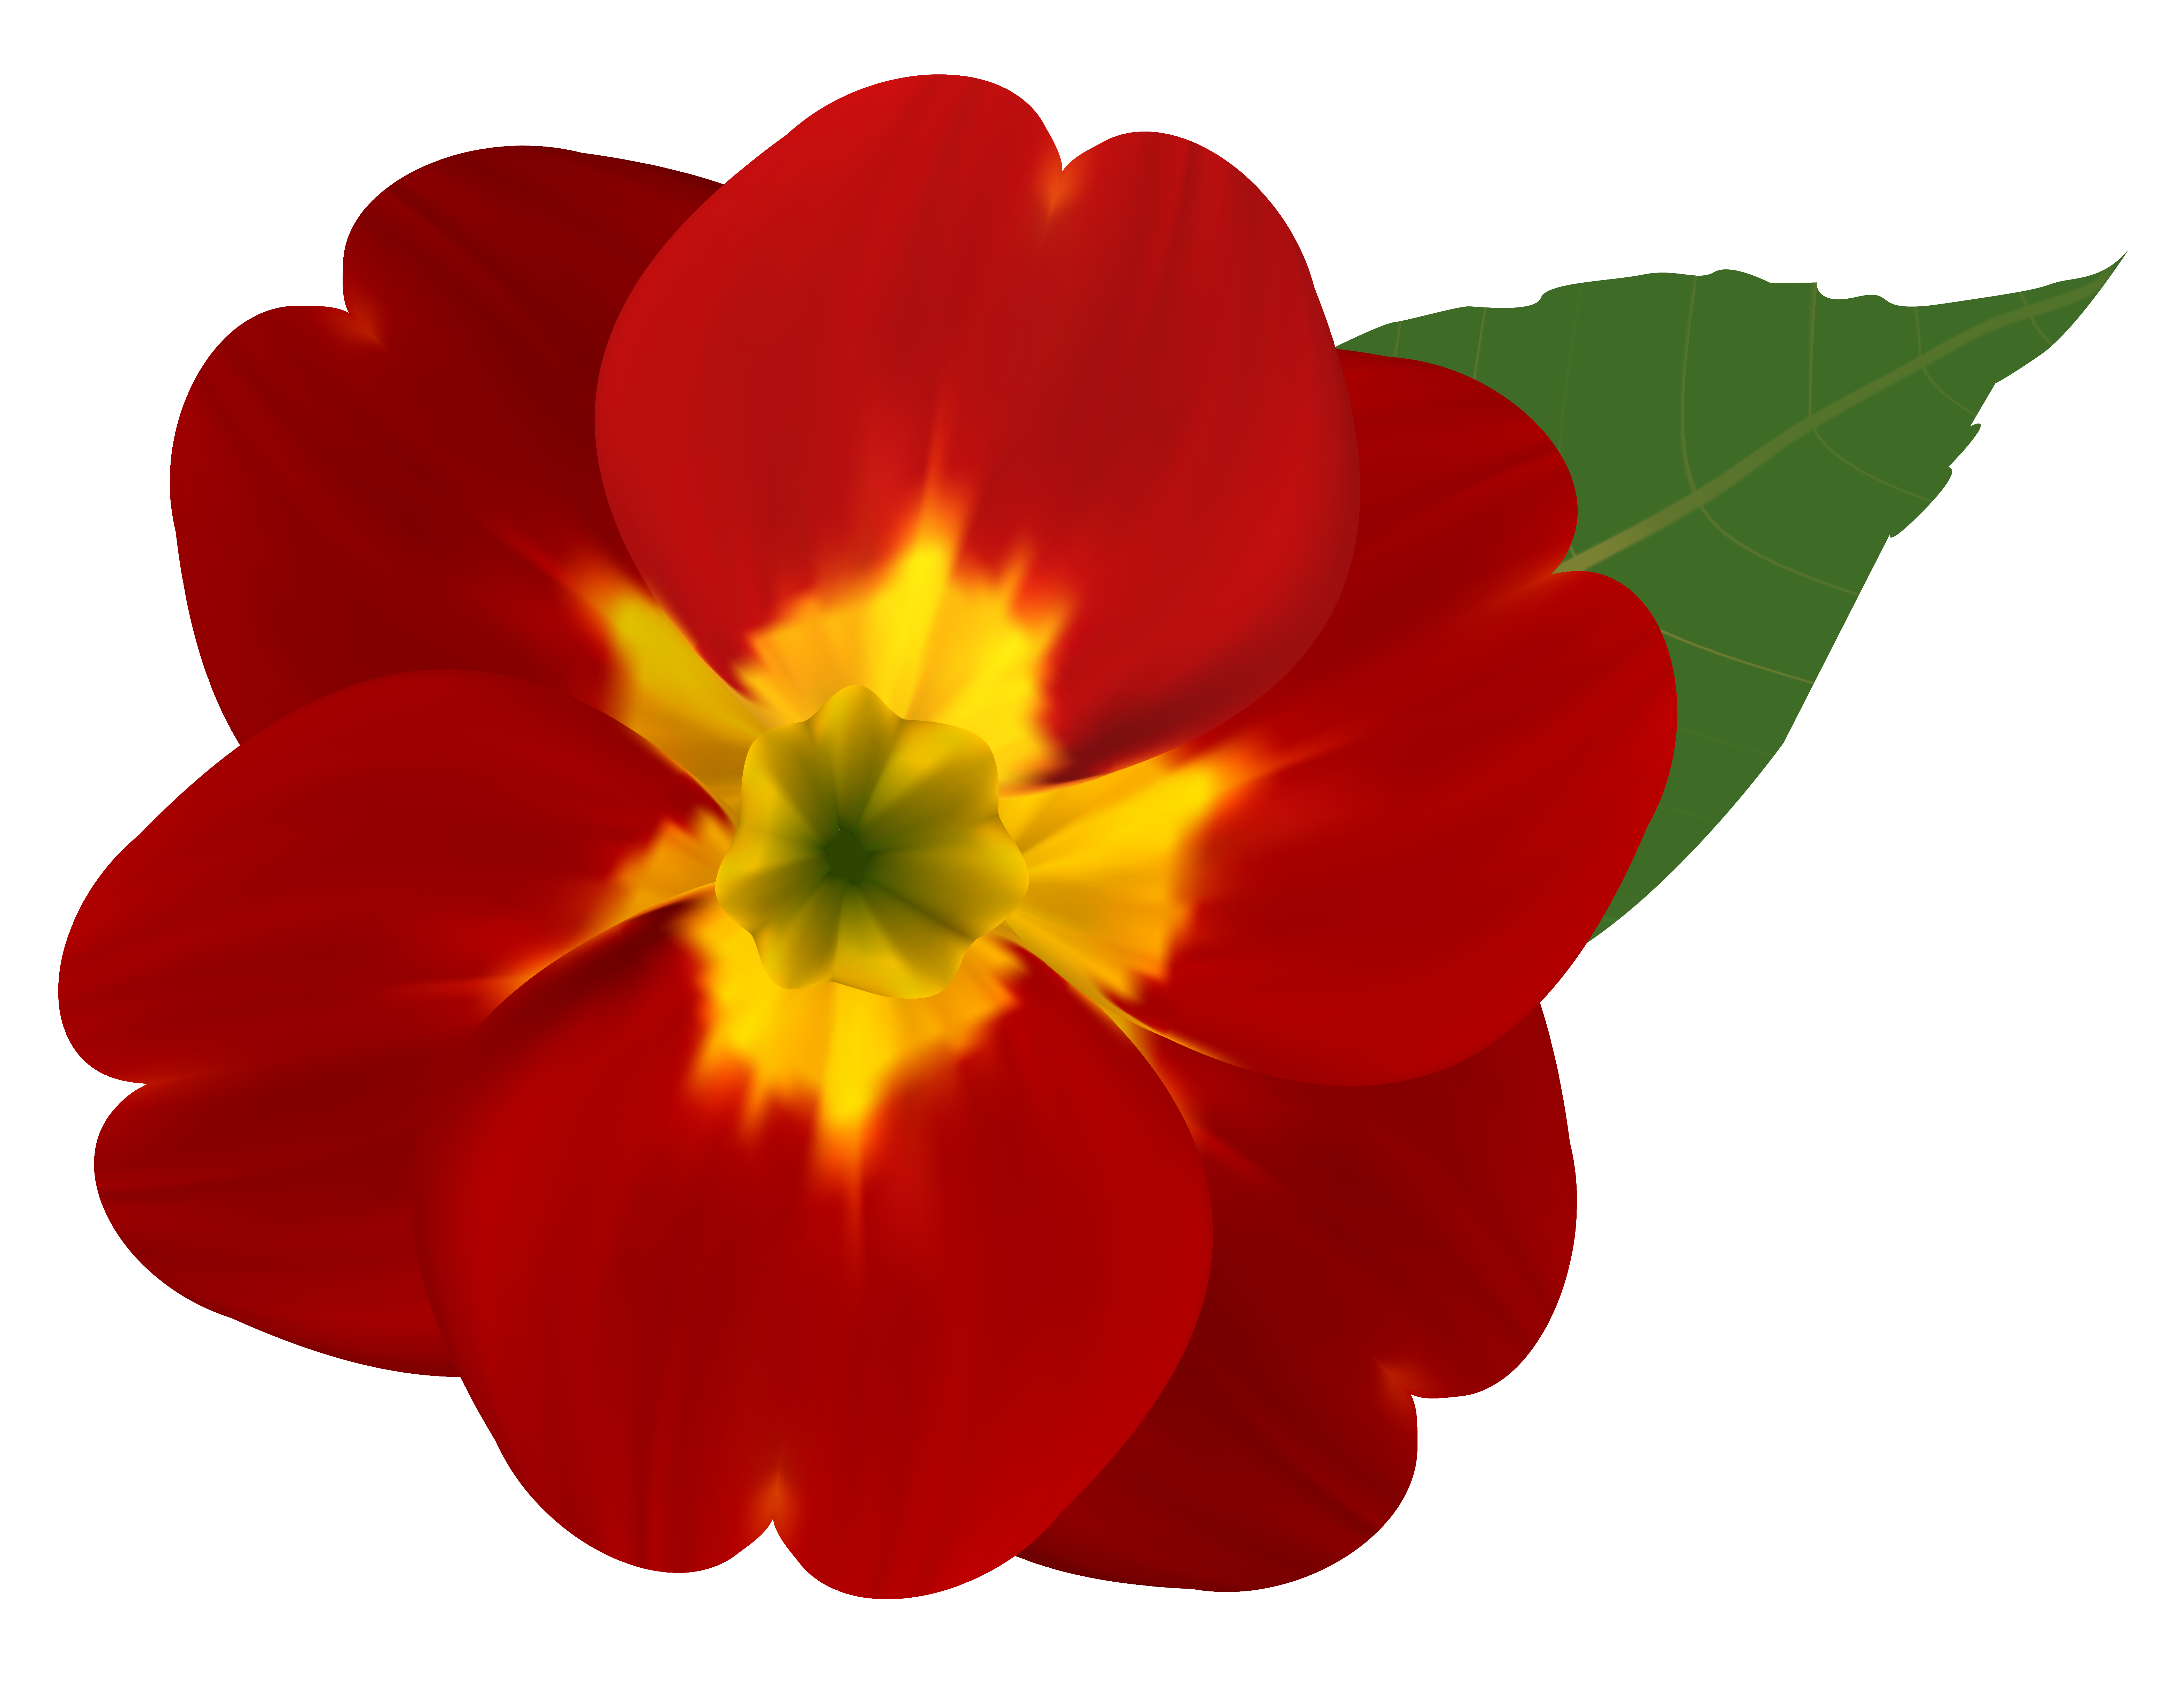 Red flower png. And yellow clipart image